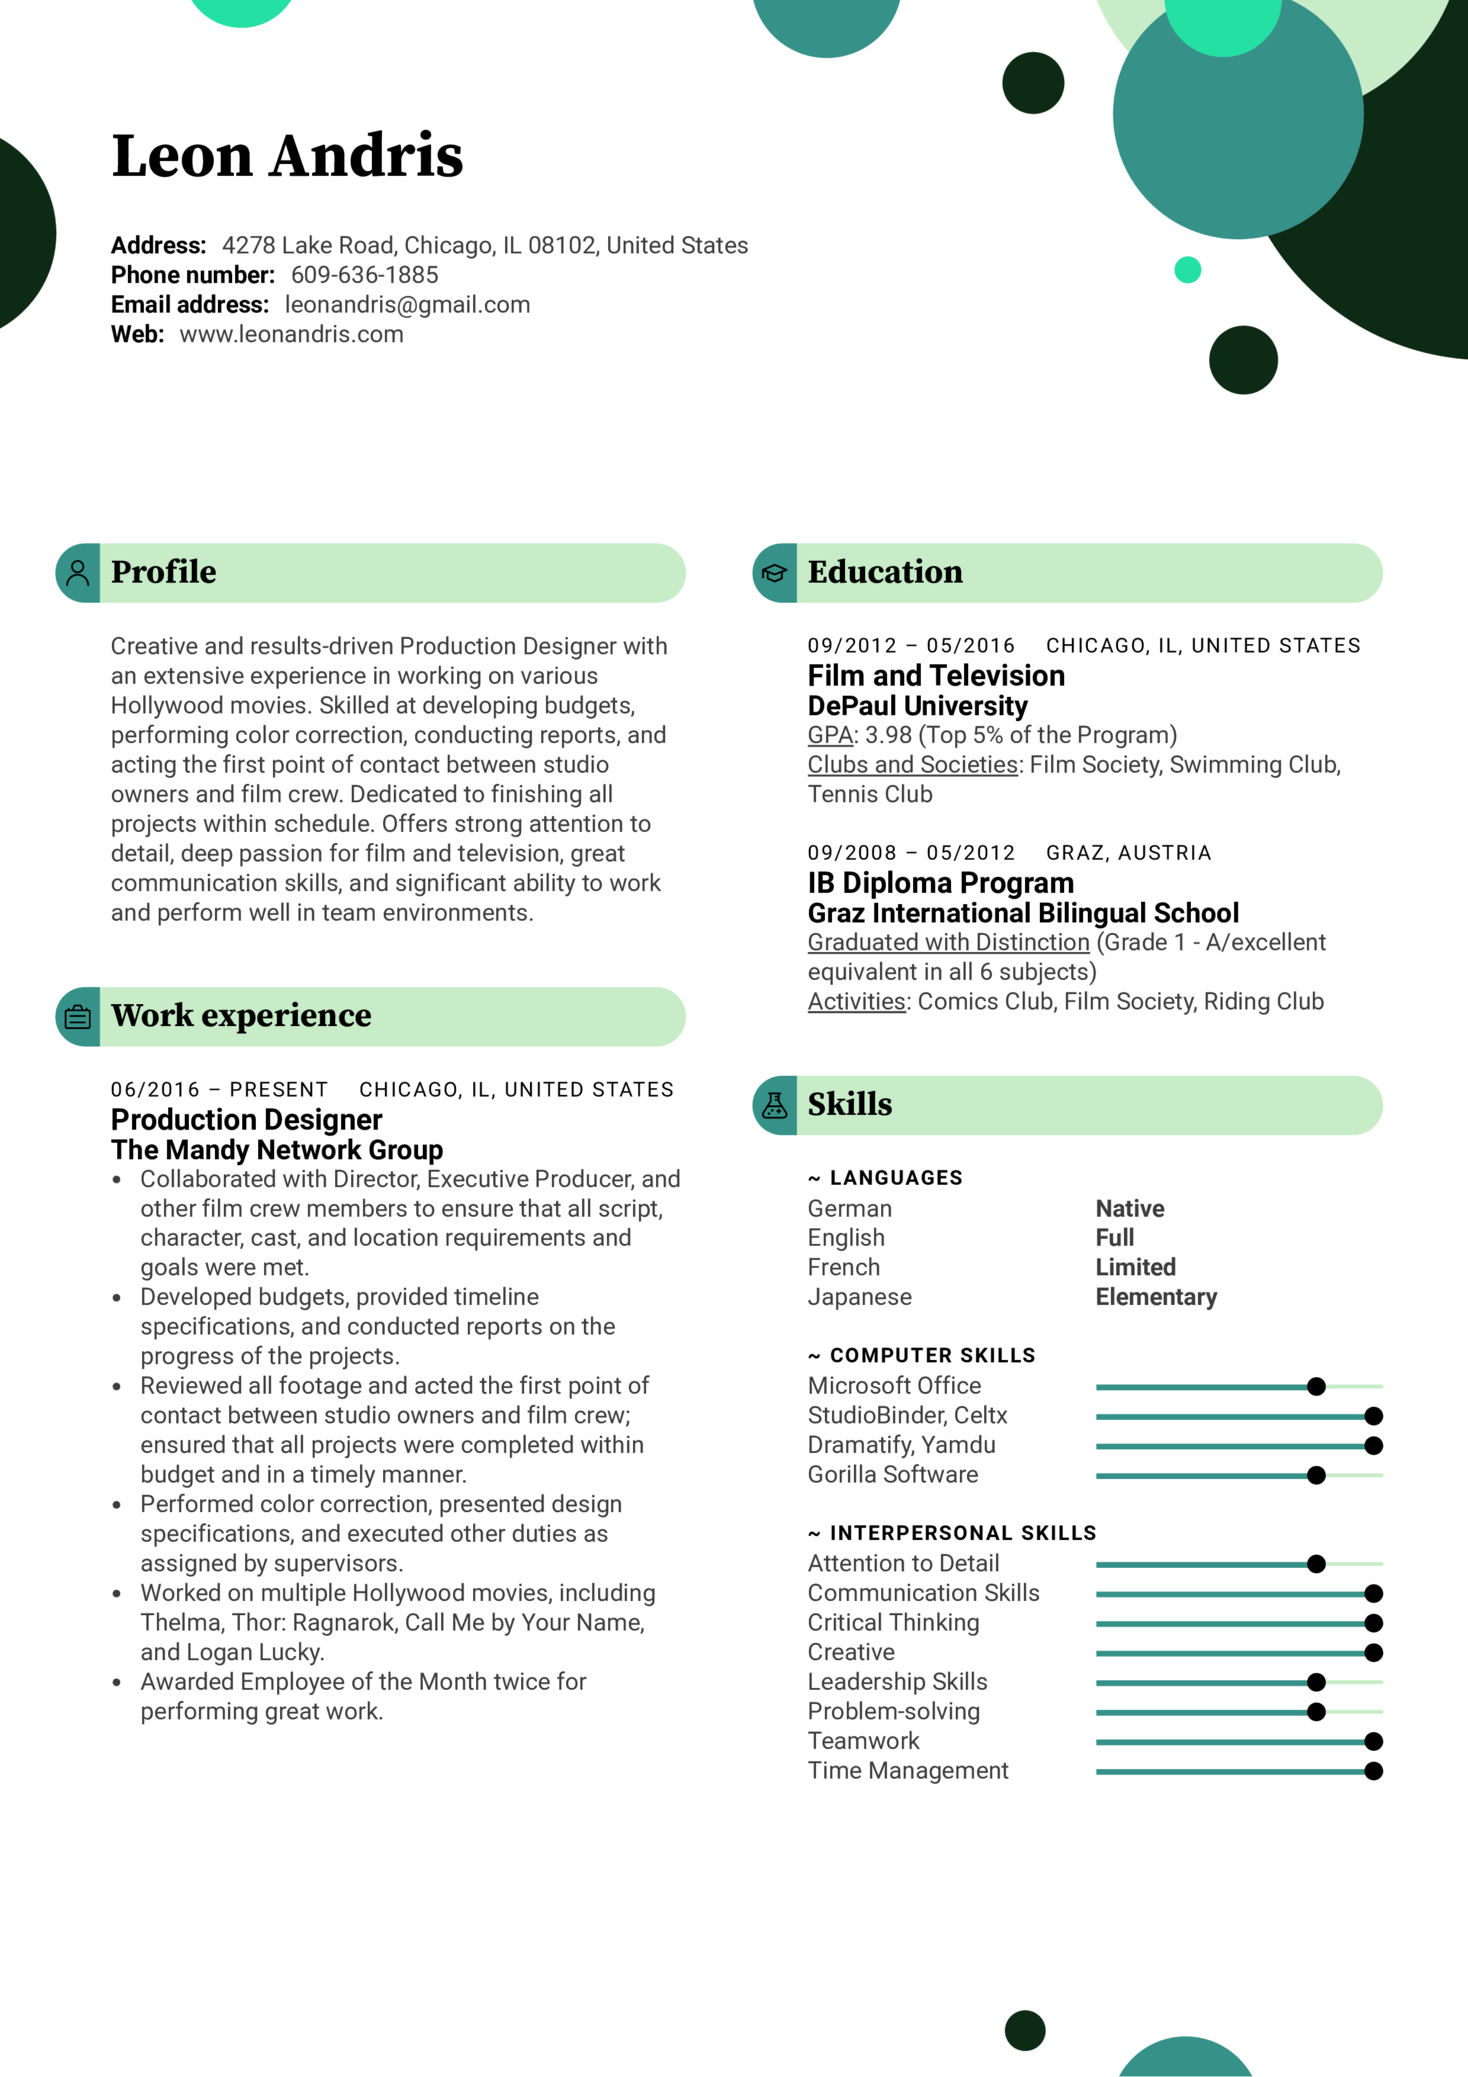 Production Designer Resume Example (Part 1)